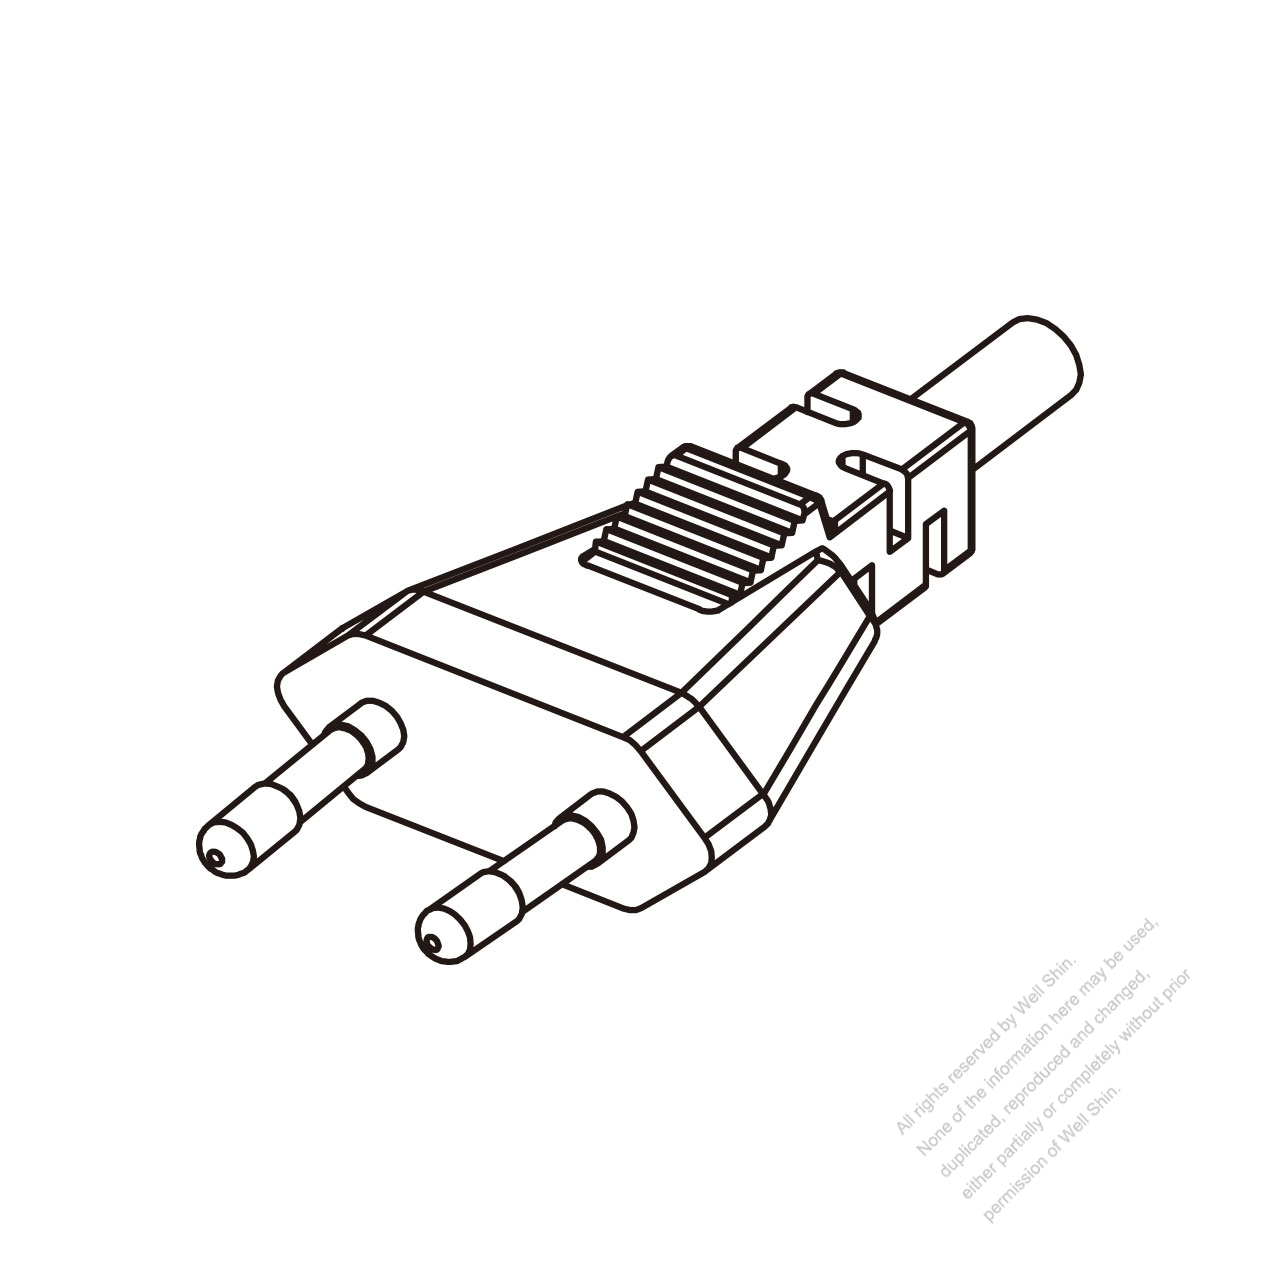 2 plug diagram best wiring library Thermostat Relay Wiring south africa 2 pin plug cable end remove outer sheath 20mm semi stripe